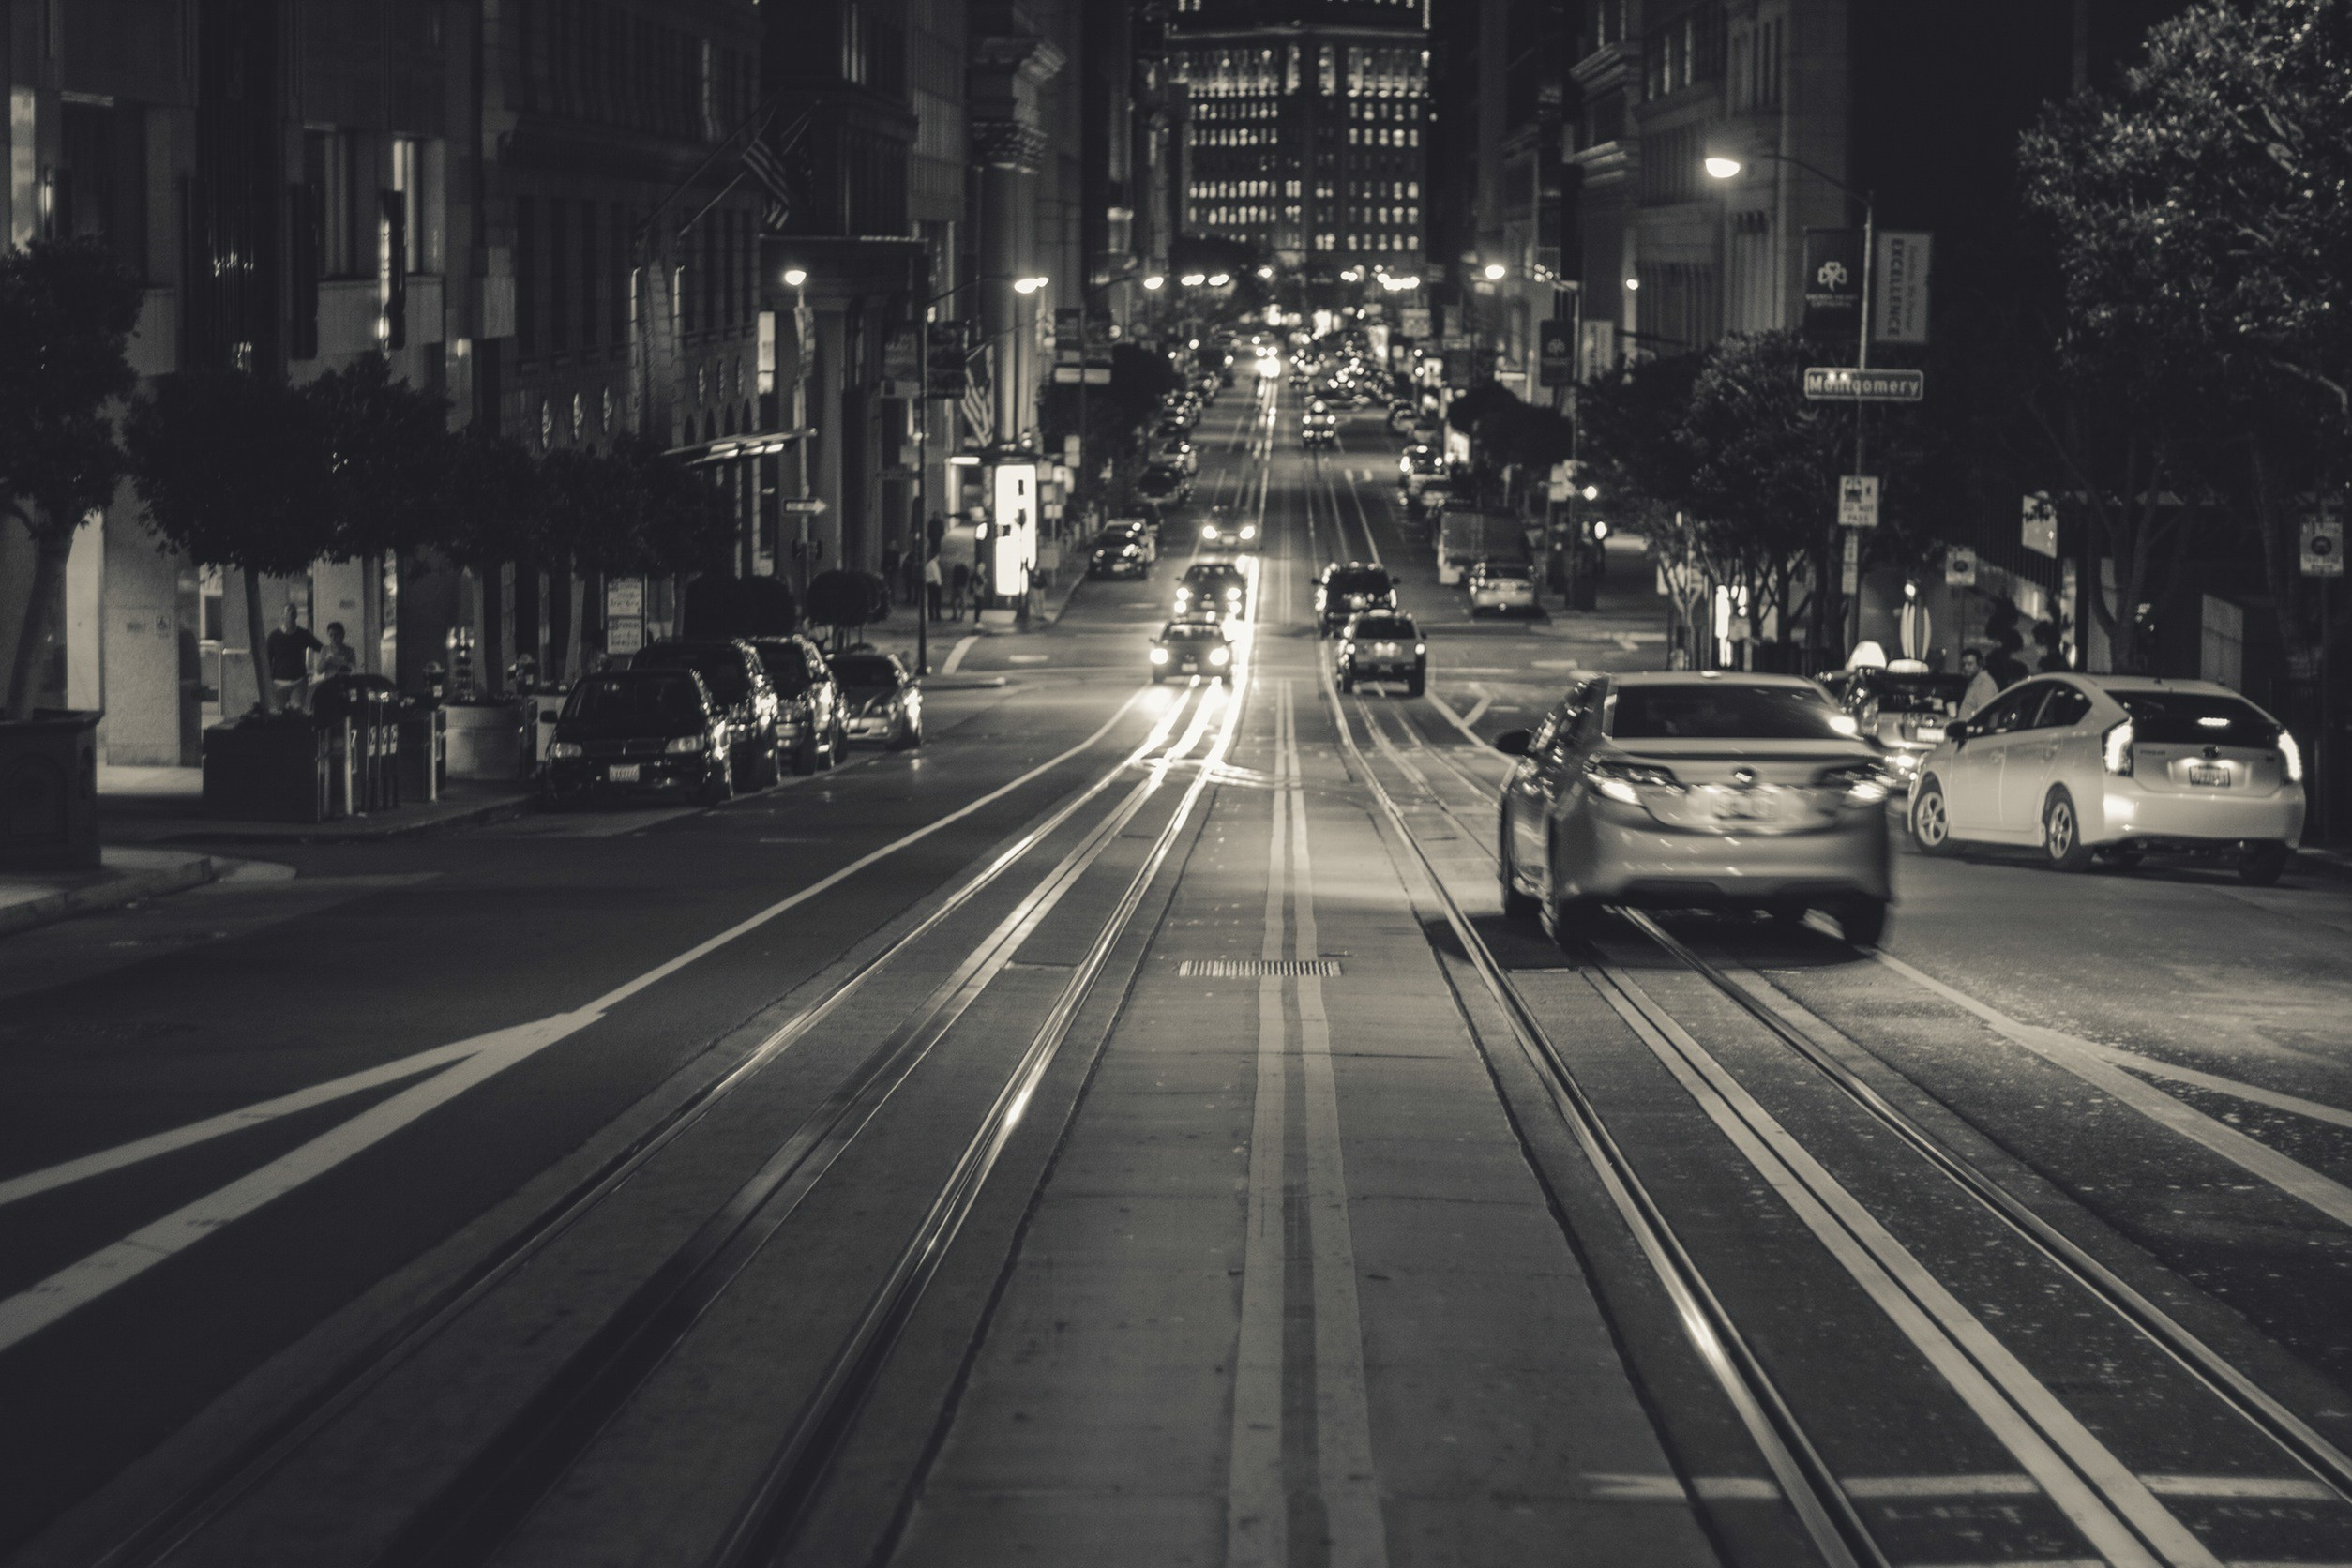 San Francisco by night © Pexels